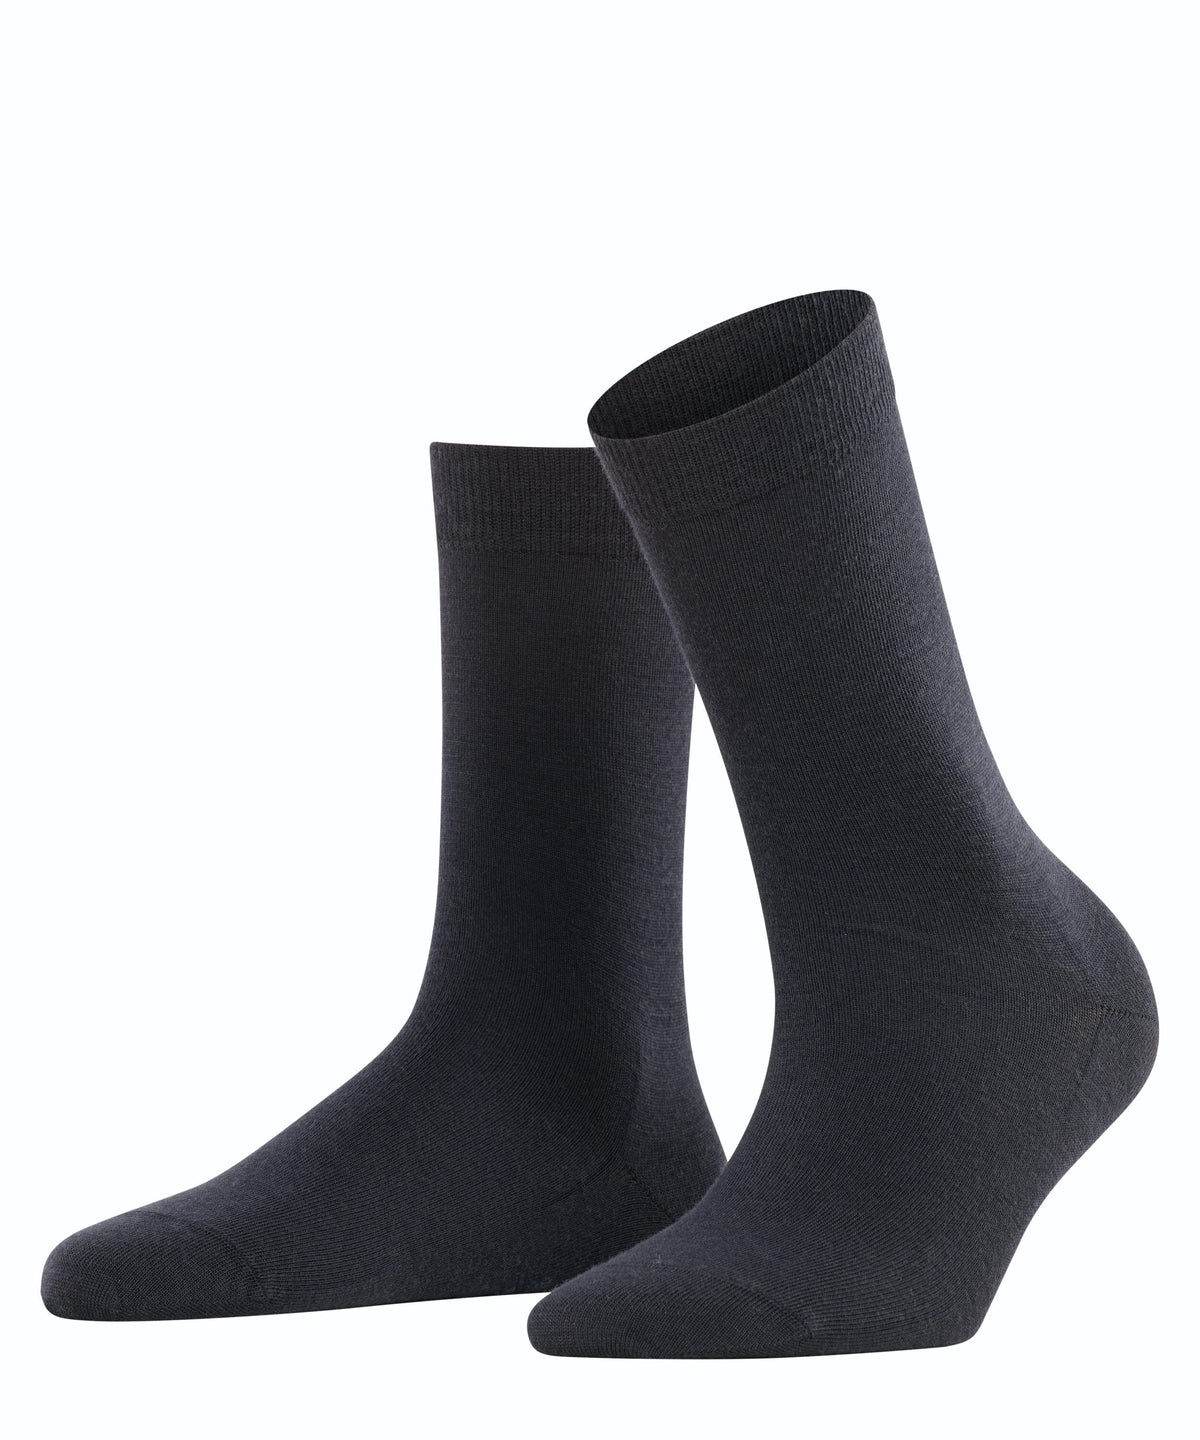 FALKE Soft Merino Wool Women's Socks - HANRO